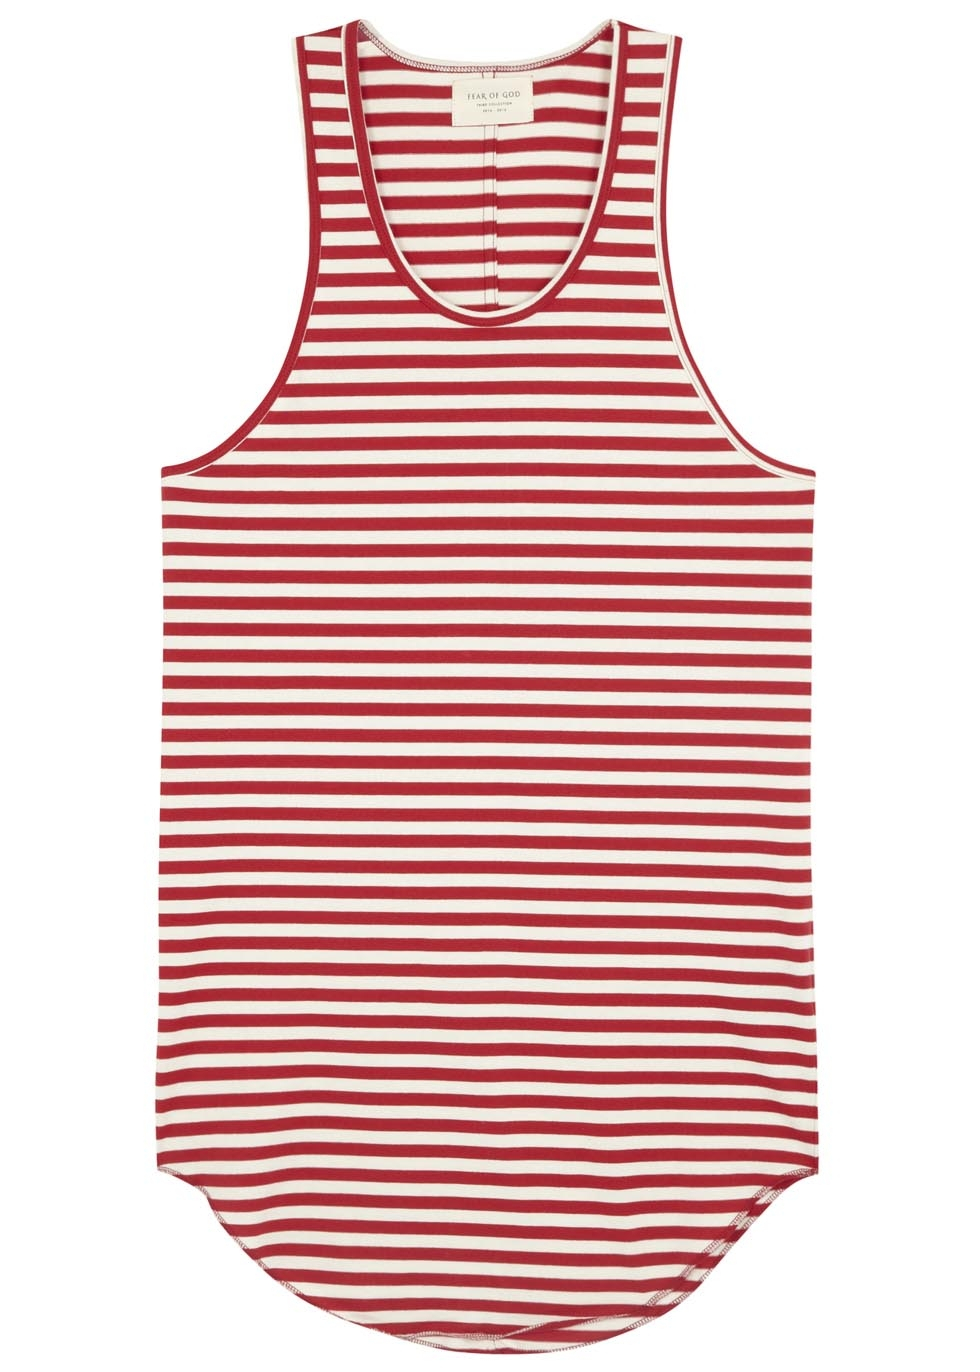 You searched for: red white blue vest! Etsy is the home to thousands of handmade, vintage, and one-of-a-kind products and gifts related to your search. No matter what you're looking for or where you are in the world, our global marketplace of sellers can help you find unique and affordable options. Let's get started!